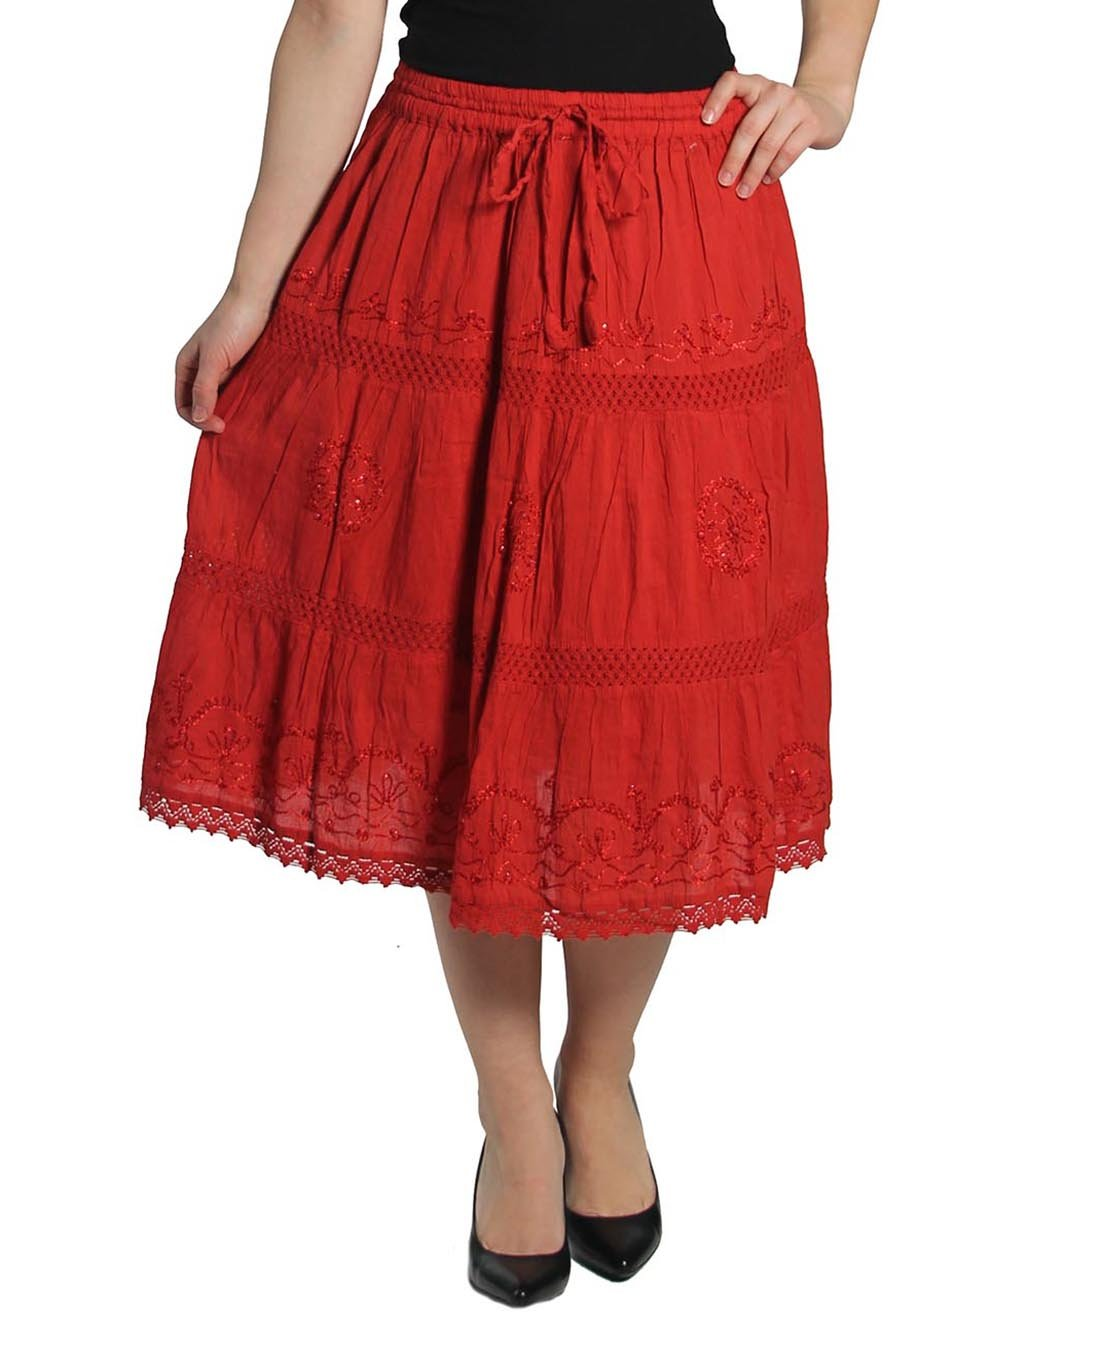 KayJay Styles Solid Color Bohemian Hippie Belly Gypsy Short Cotton Mid Length Skirt (Red) One Size